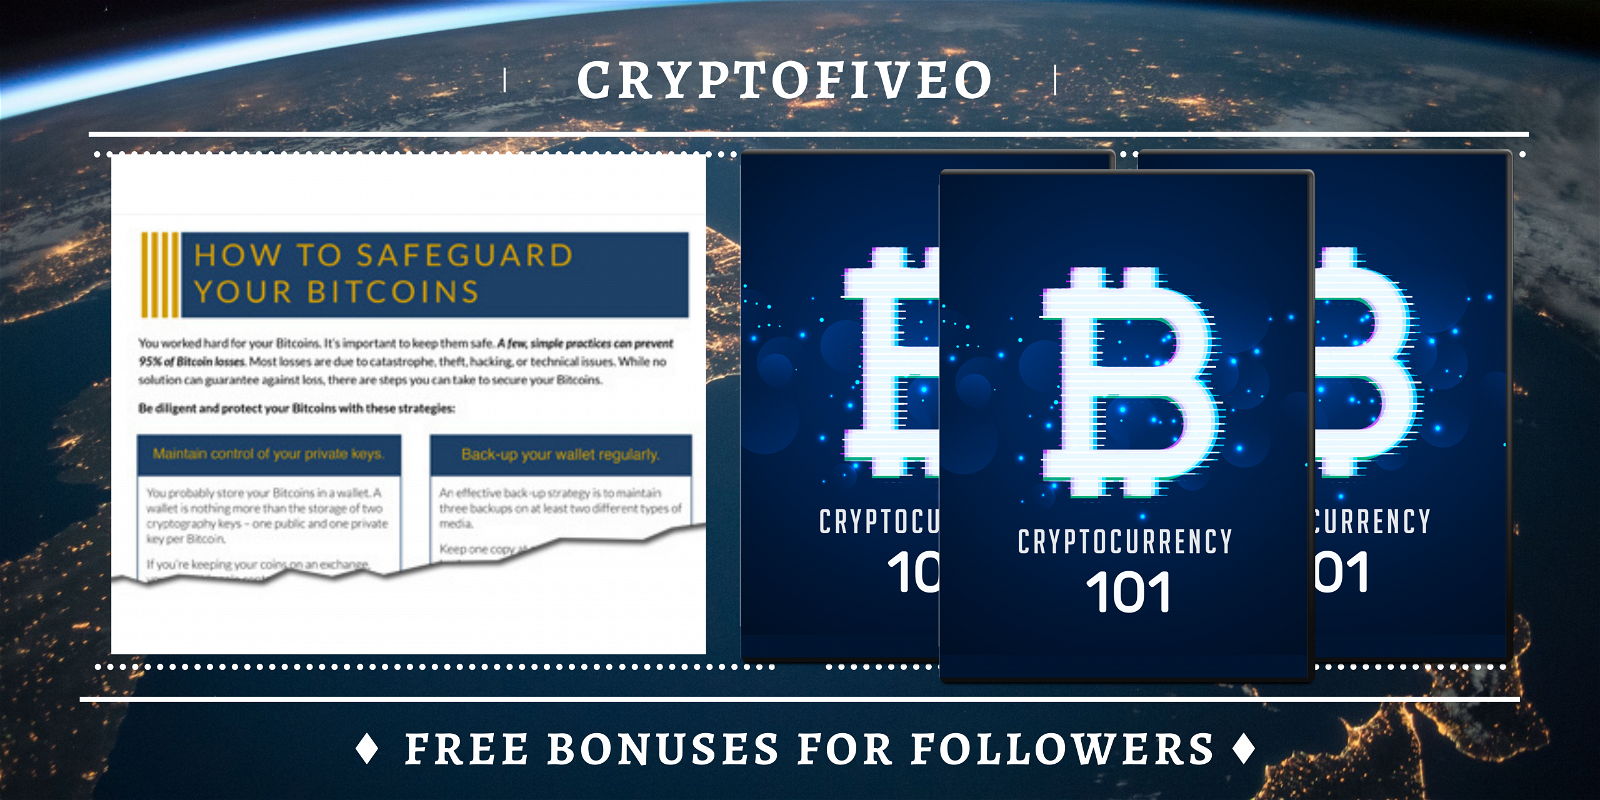 Follow blog via email and receive two free products from the cryptocurrency world.